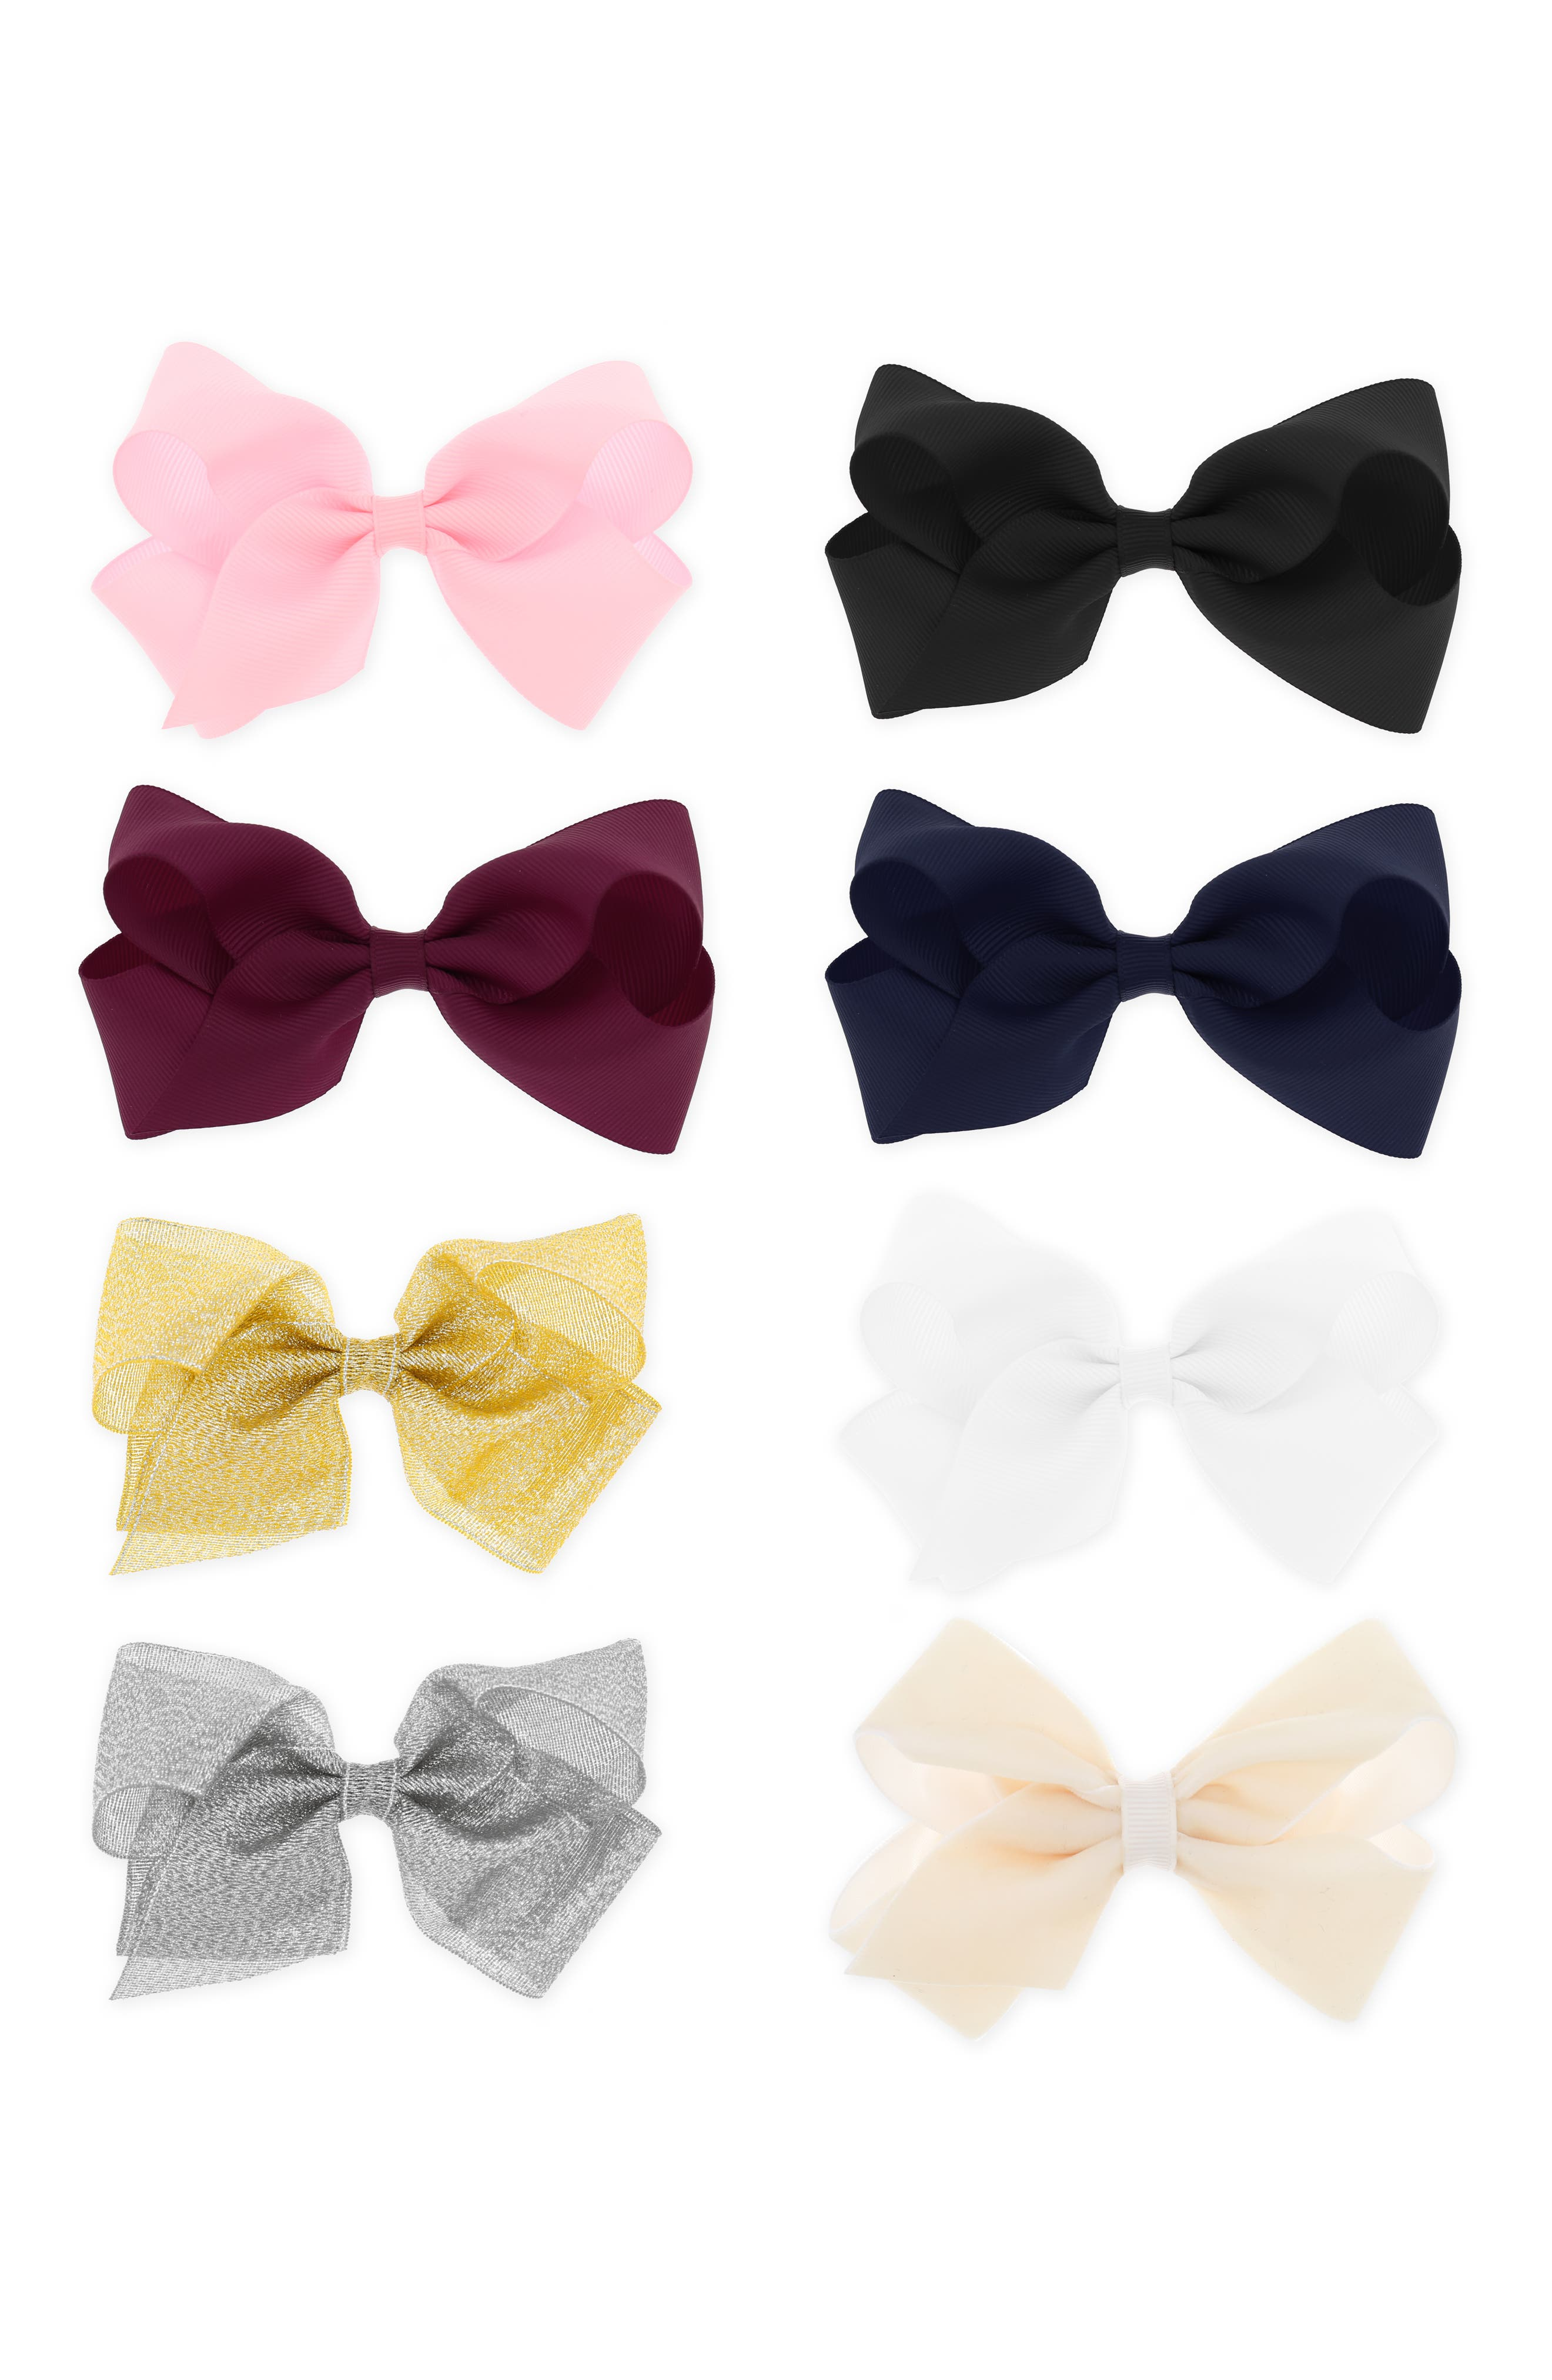 8-Pack Bow Hair Clip Set,                             Main thumbnail 1, color,                             650